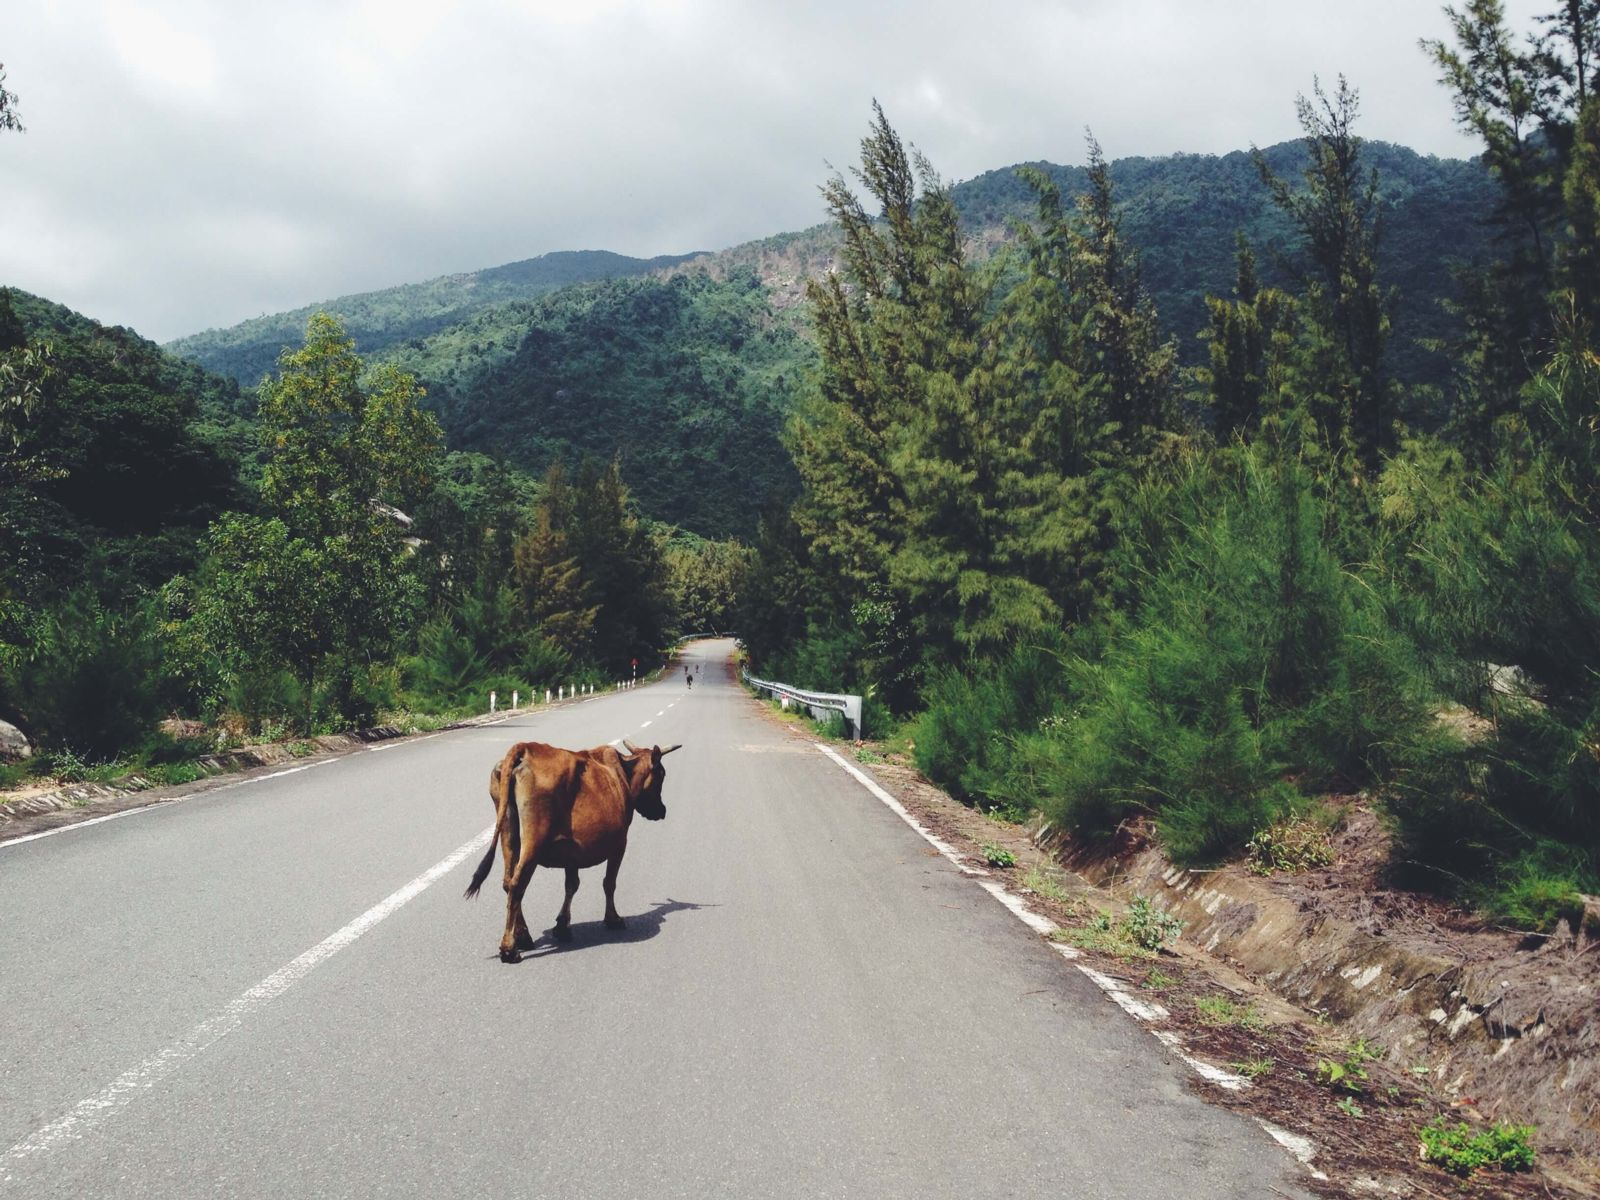 Cow in the road causing less than ideal driving conditions